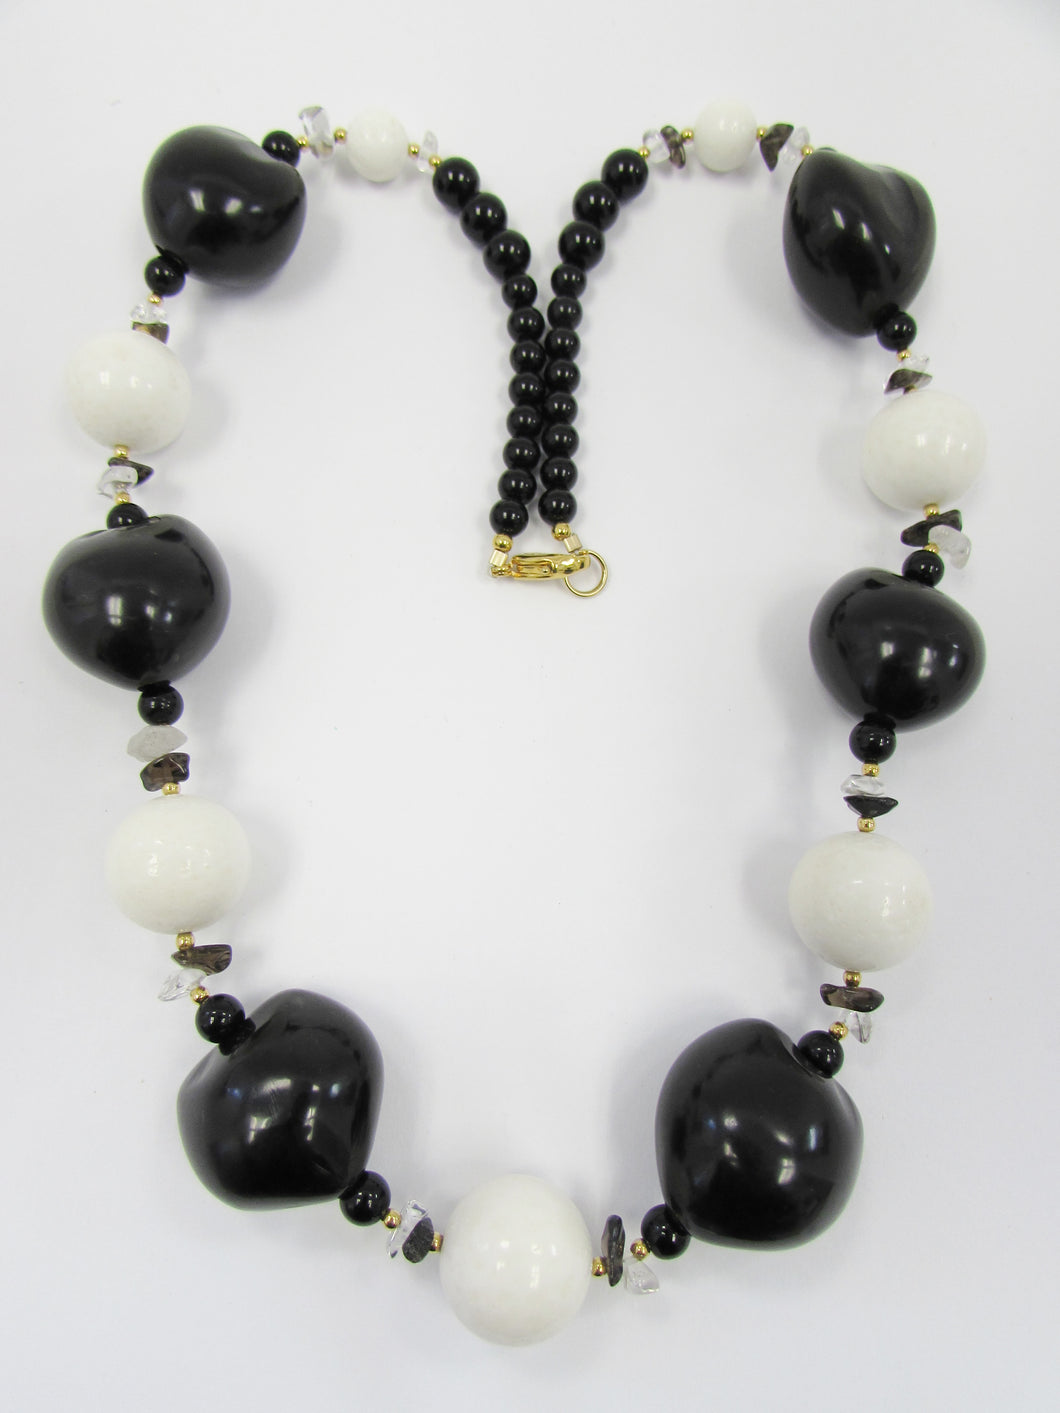 Lee Sands Kukui nut w White Sponge Coral Necklace